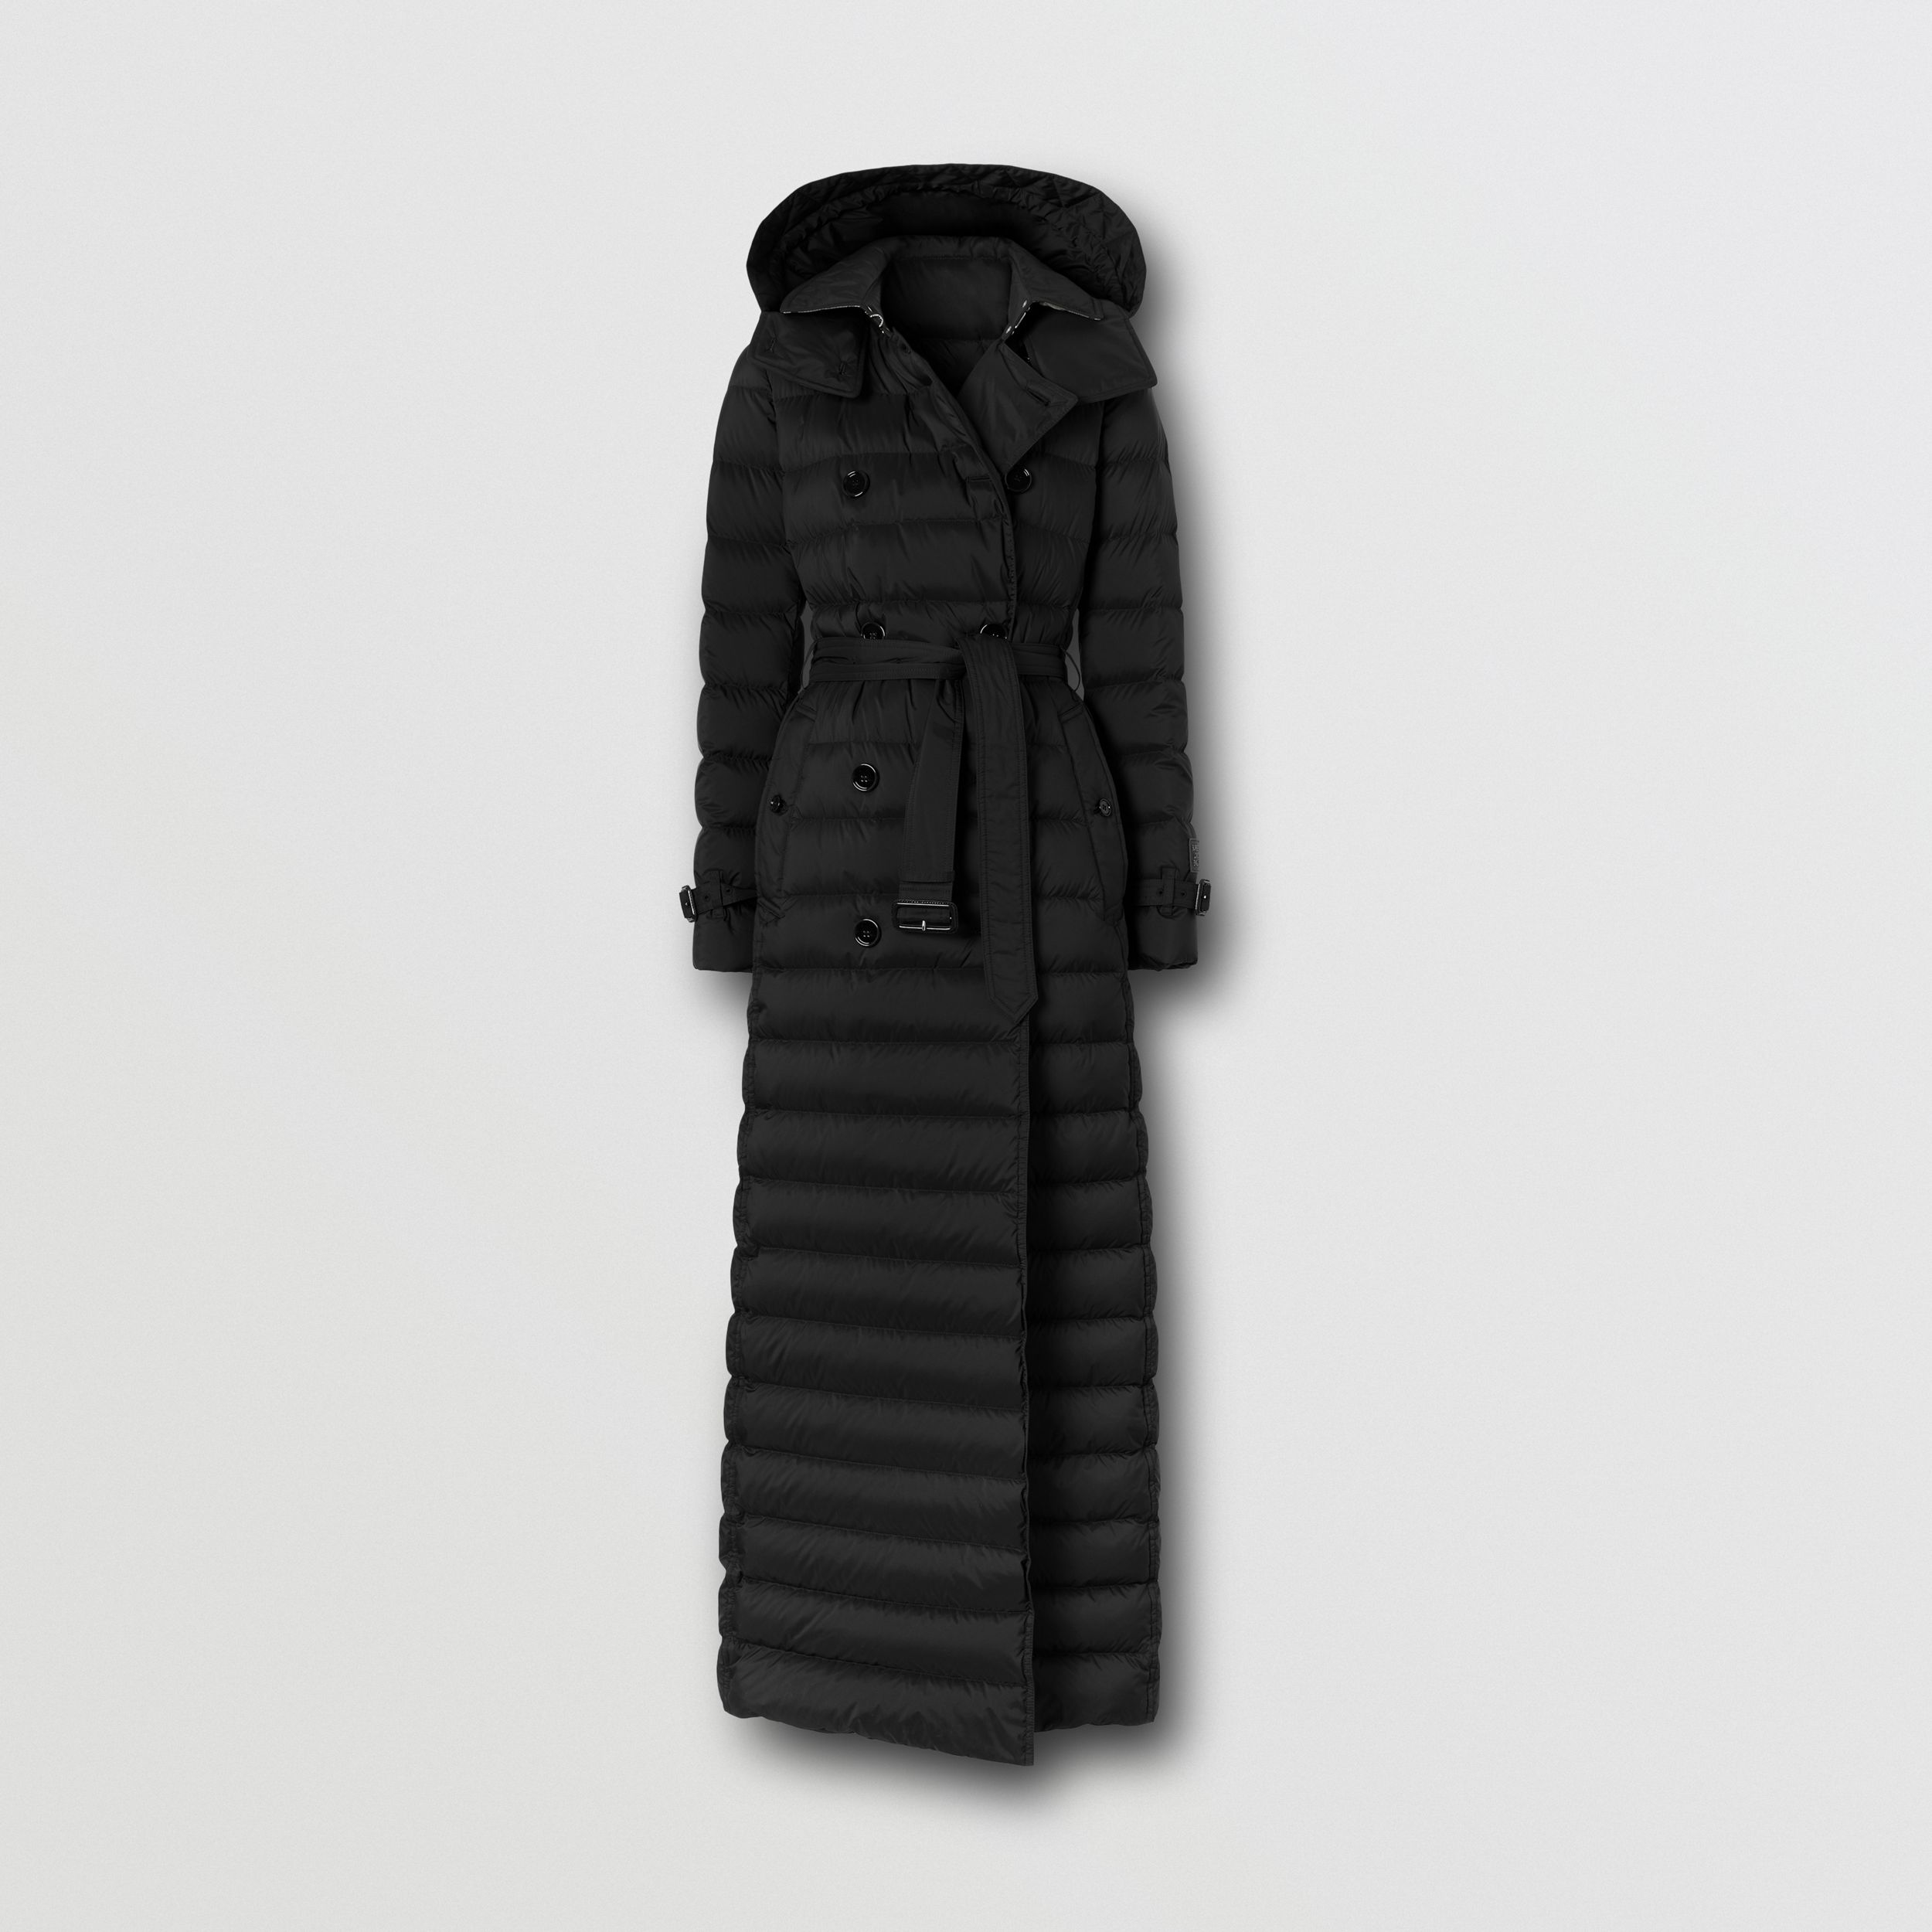 Logo Appliqué Detachable Hood Puffer Coat in Black - Women | Burberry United States - 4